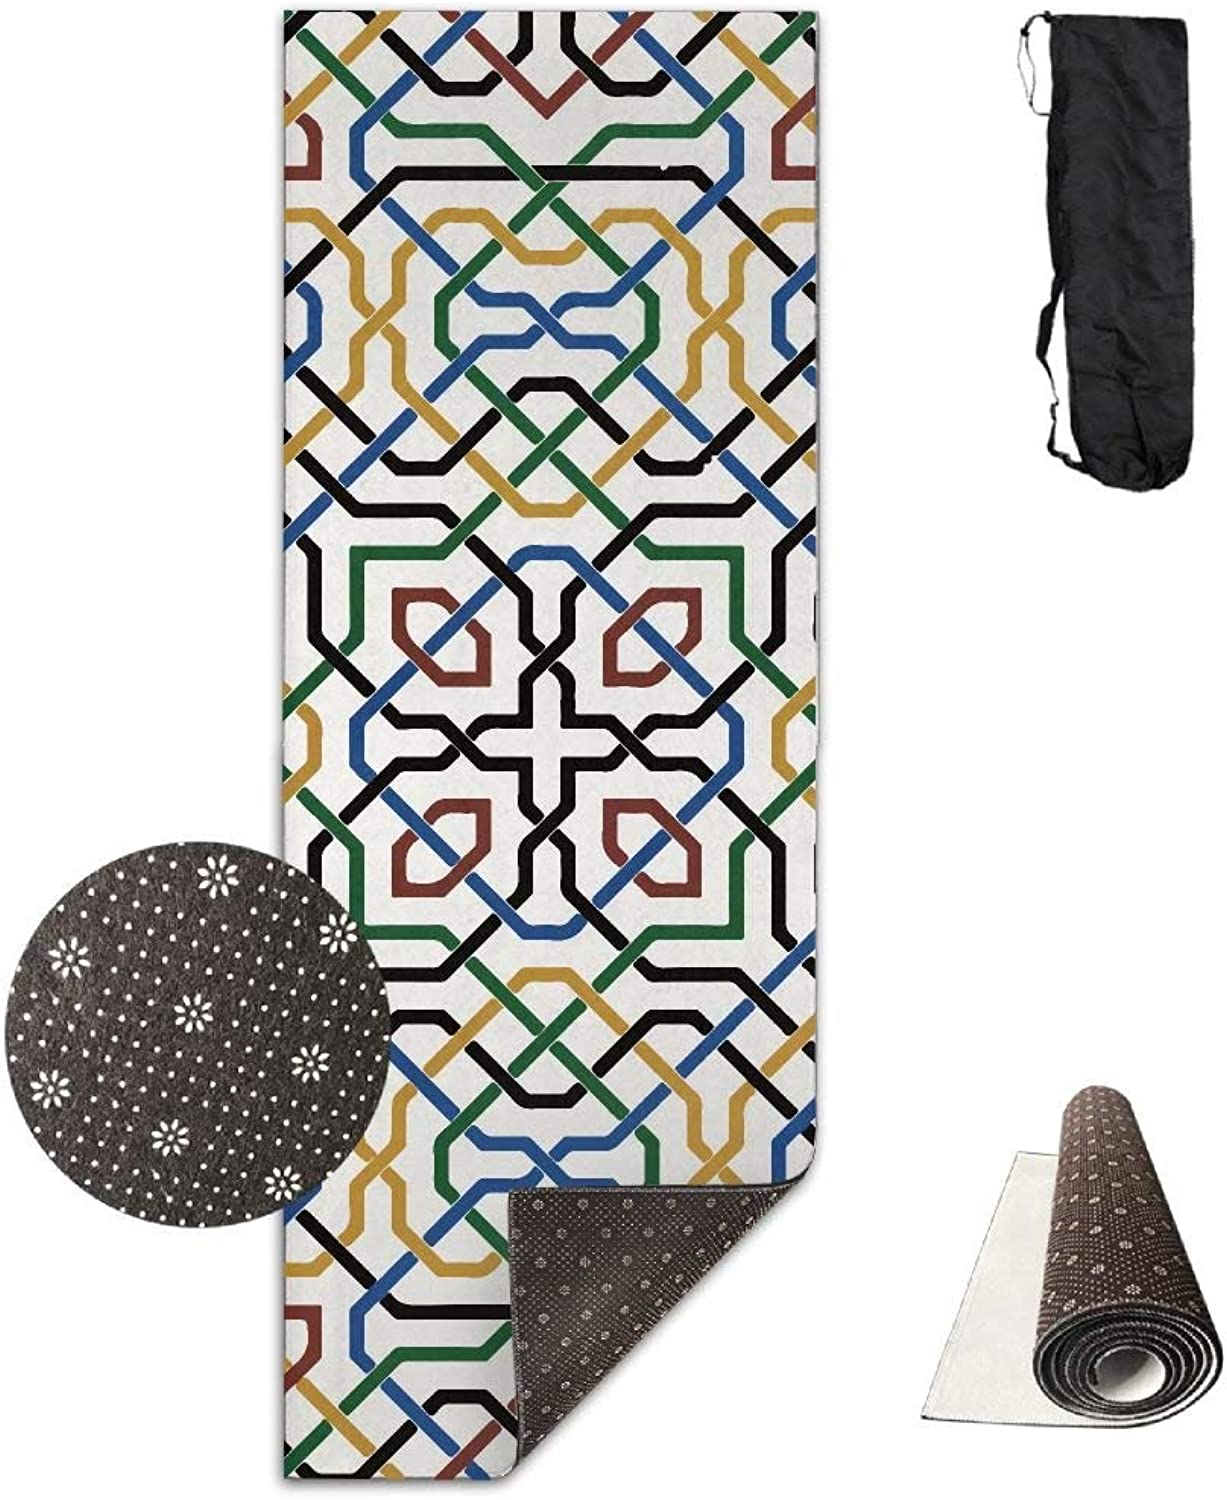 Mgoldcco Pattern Deluxe Yoga Mat Aerobic Exercise Pilates